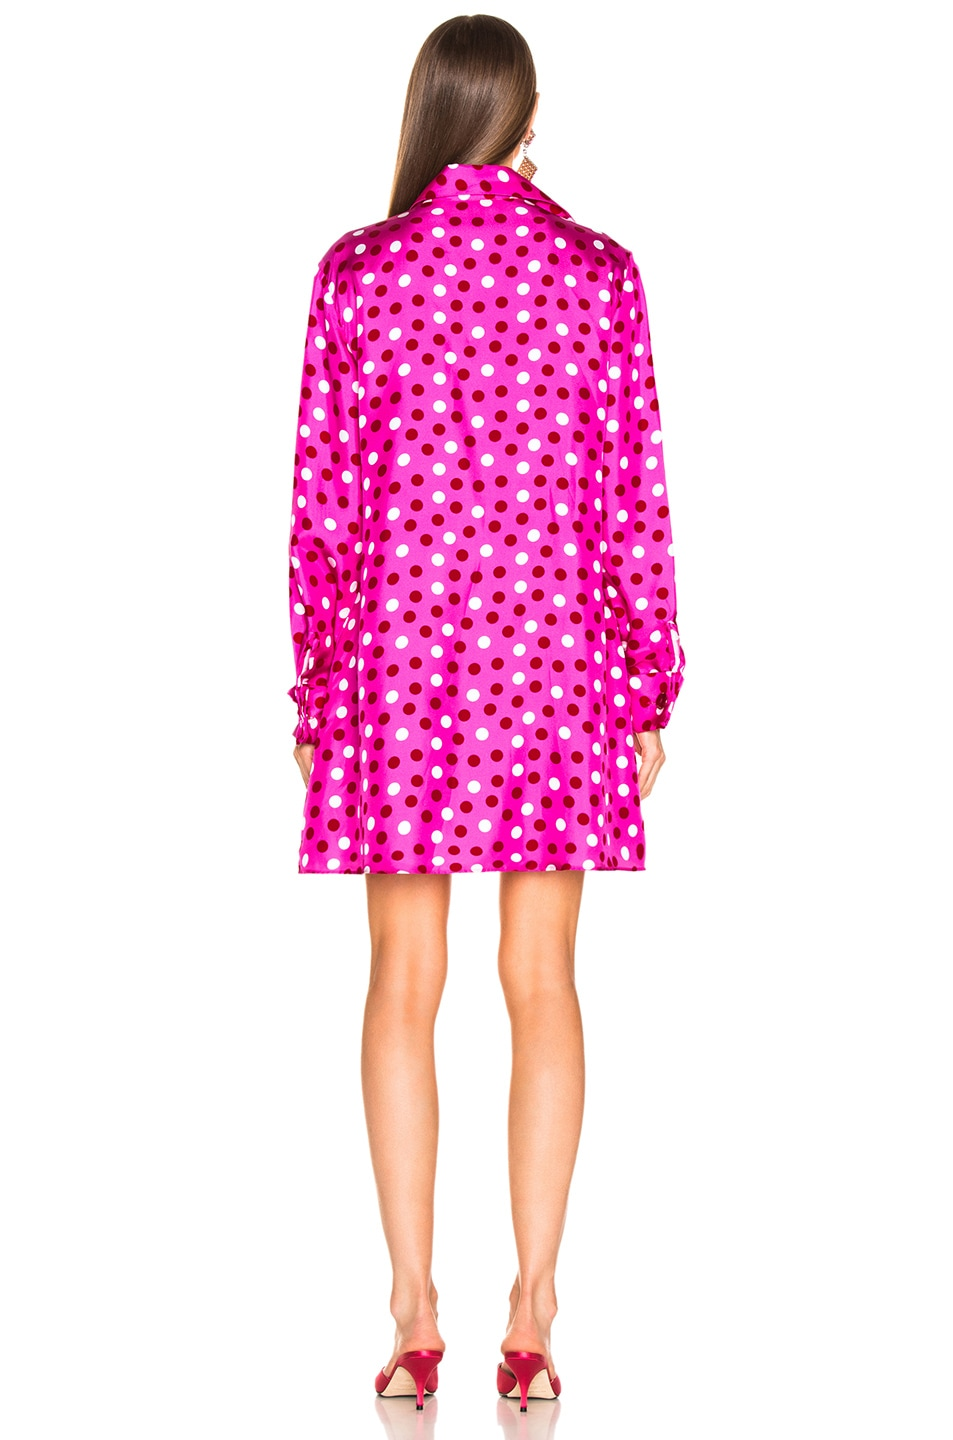 Image 4 of Maggie Marilyn Heat Of The Moment Dress in Pink, White & Red Polka Dot